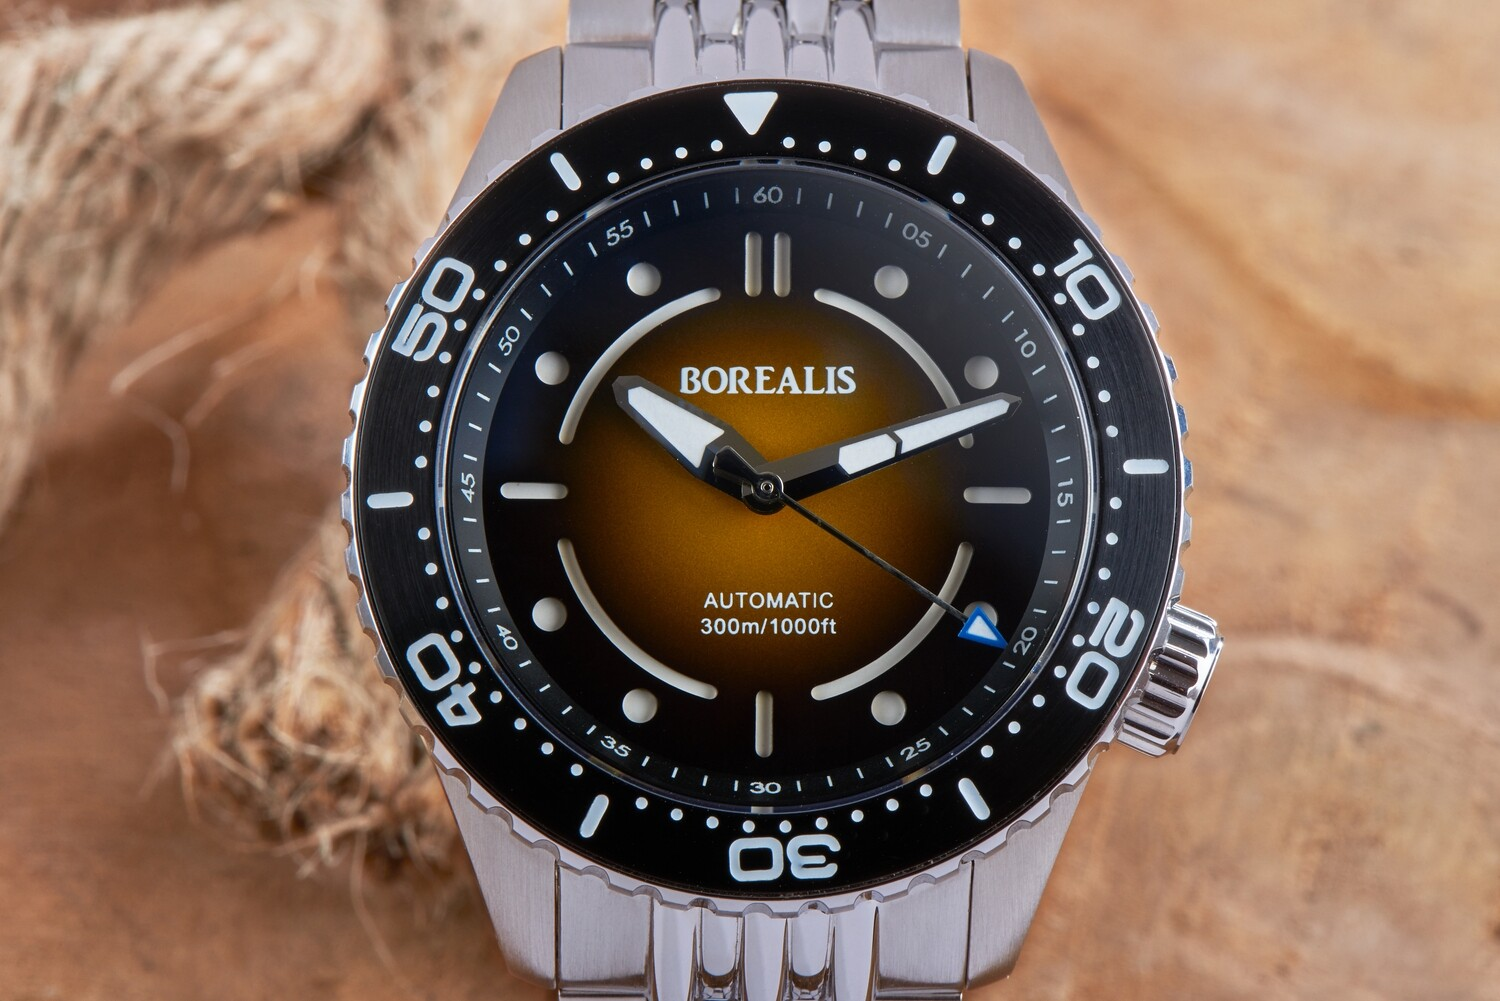 Pre-Order Borealis Neptuno Caramel Brown to Black Dial No Date NH38 Automatic Movement 300m Diver Watch